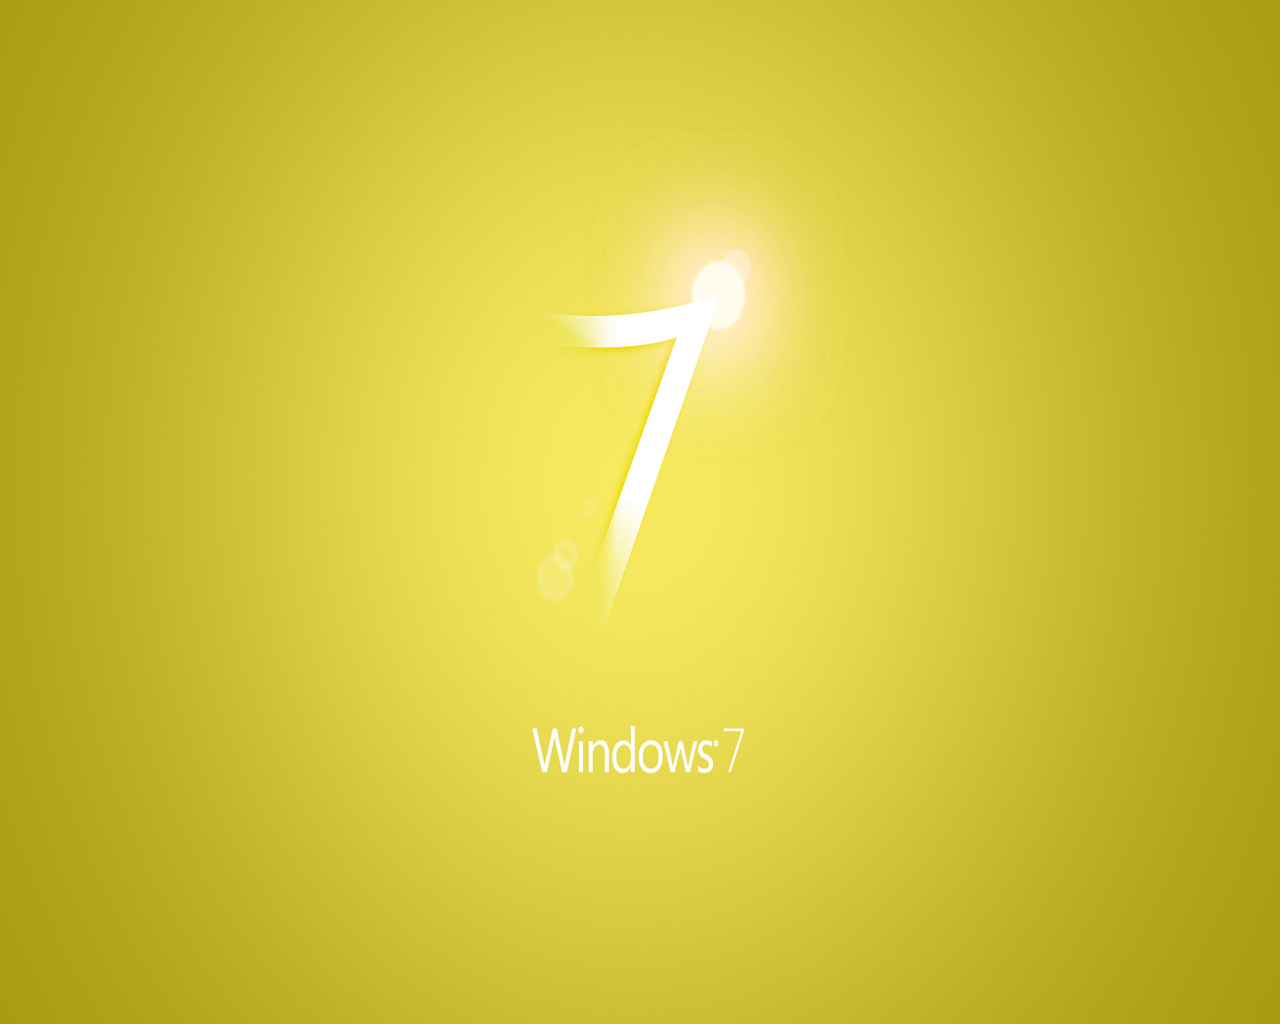 windows-7-yellow